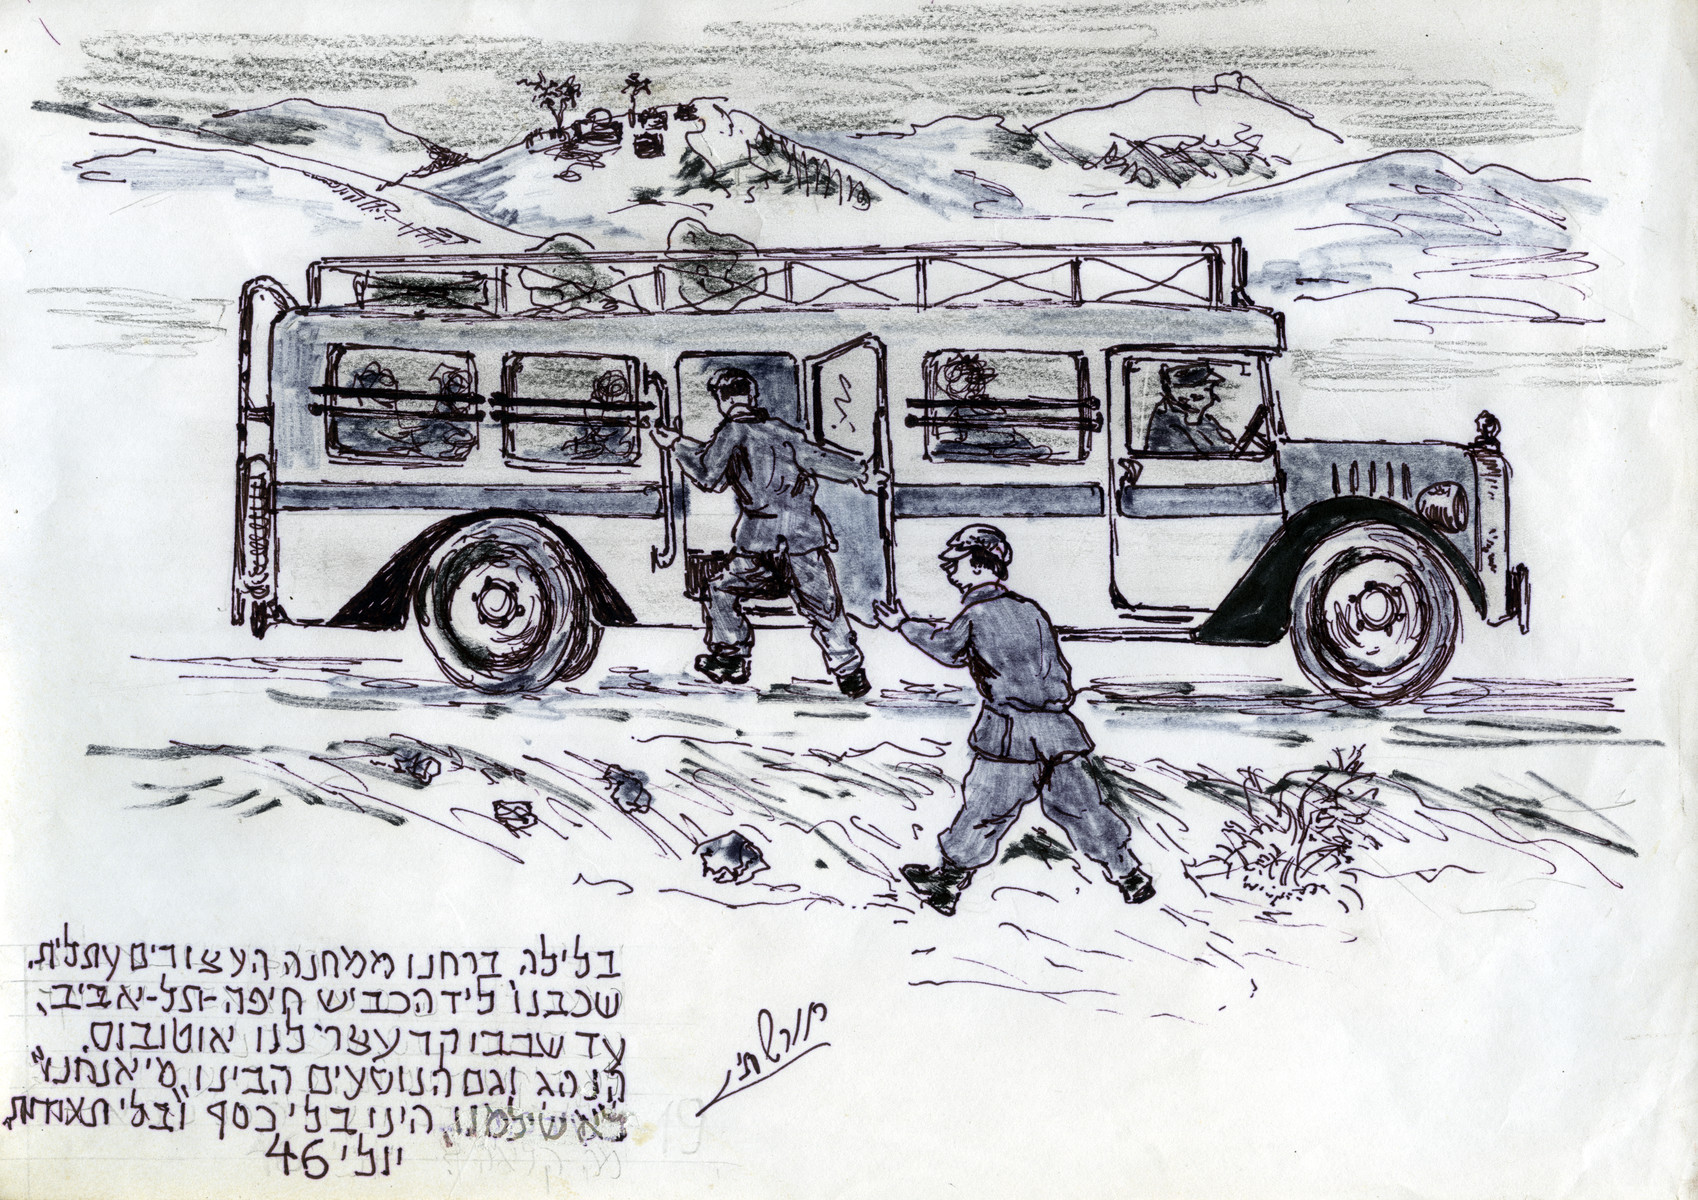 Page of a pictoral memoir drawn by the donor documenting his experiences after the Holocaust.  The drawing depicts a night-time escape by Peretz and some friends from the Athlit detention center.  They boarded a civilan bus that was headed towards Tel Aviv.